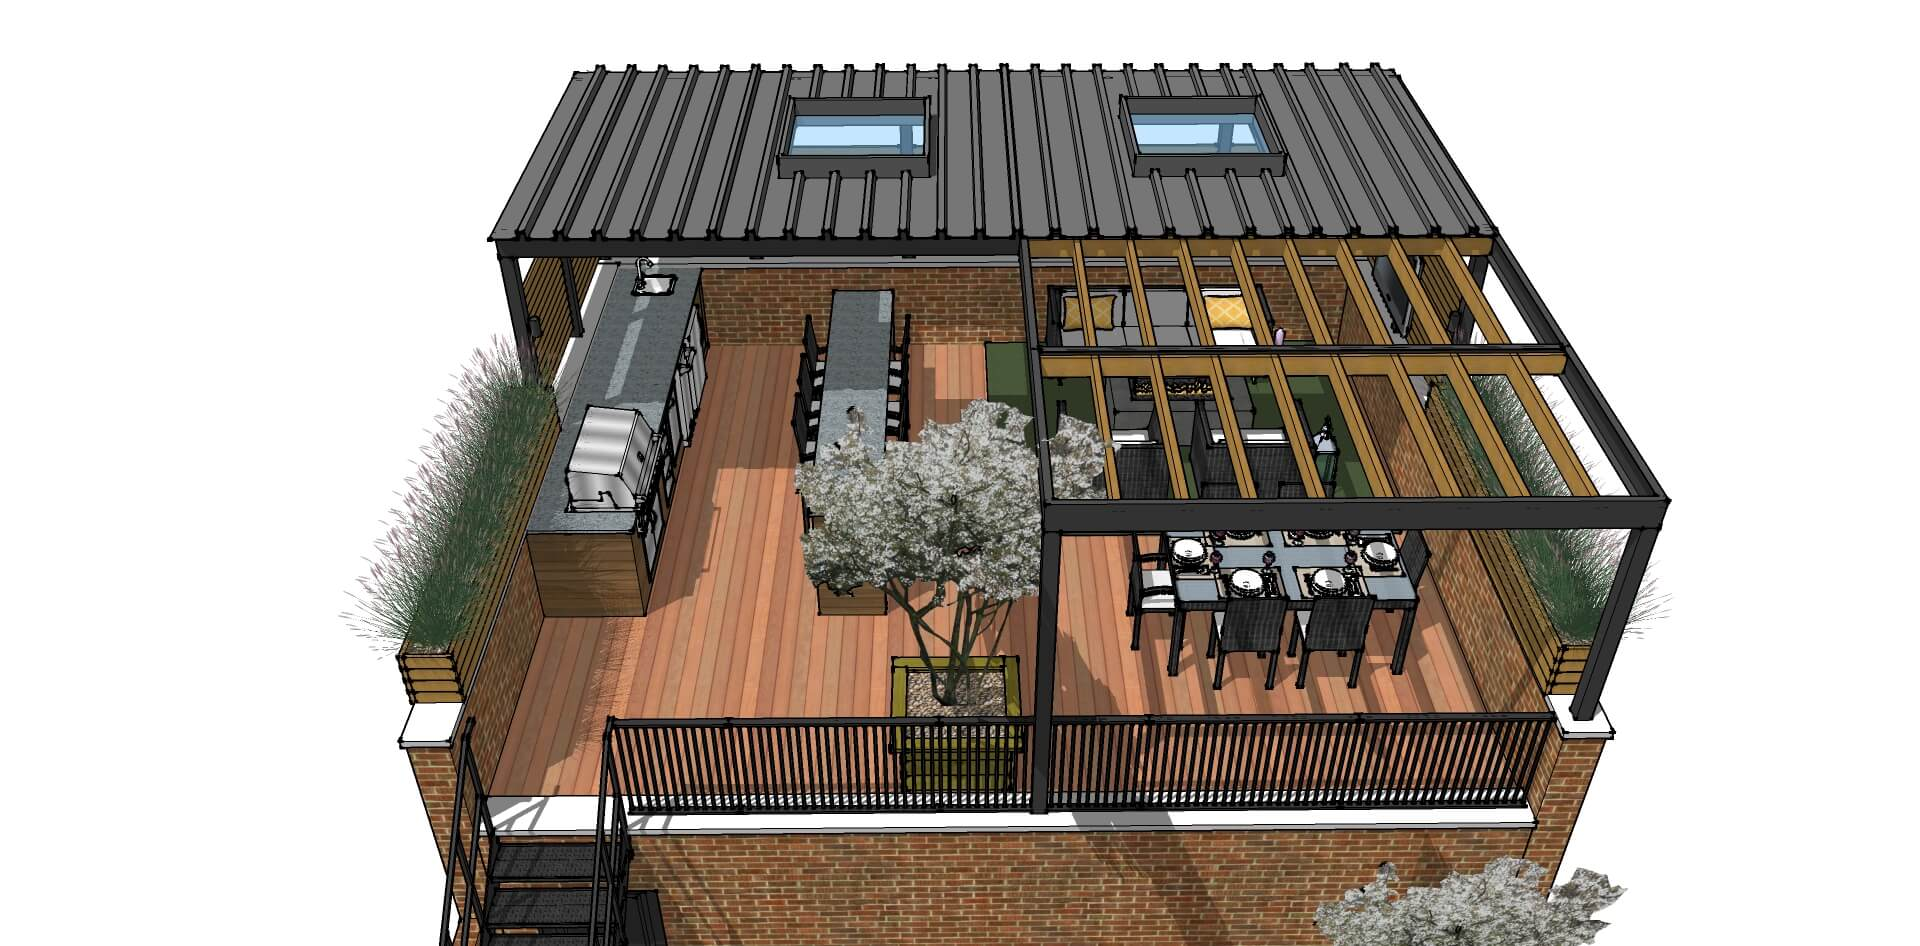 Roof Deck Renovation And Modernization-Lakeview, Chicago on Deck Over Patio Ideas id=22250